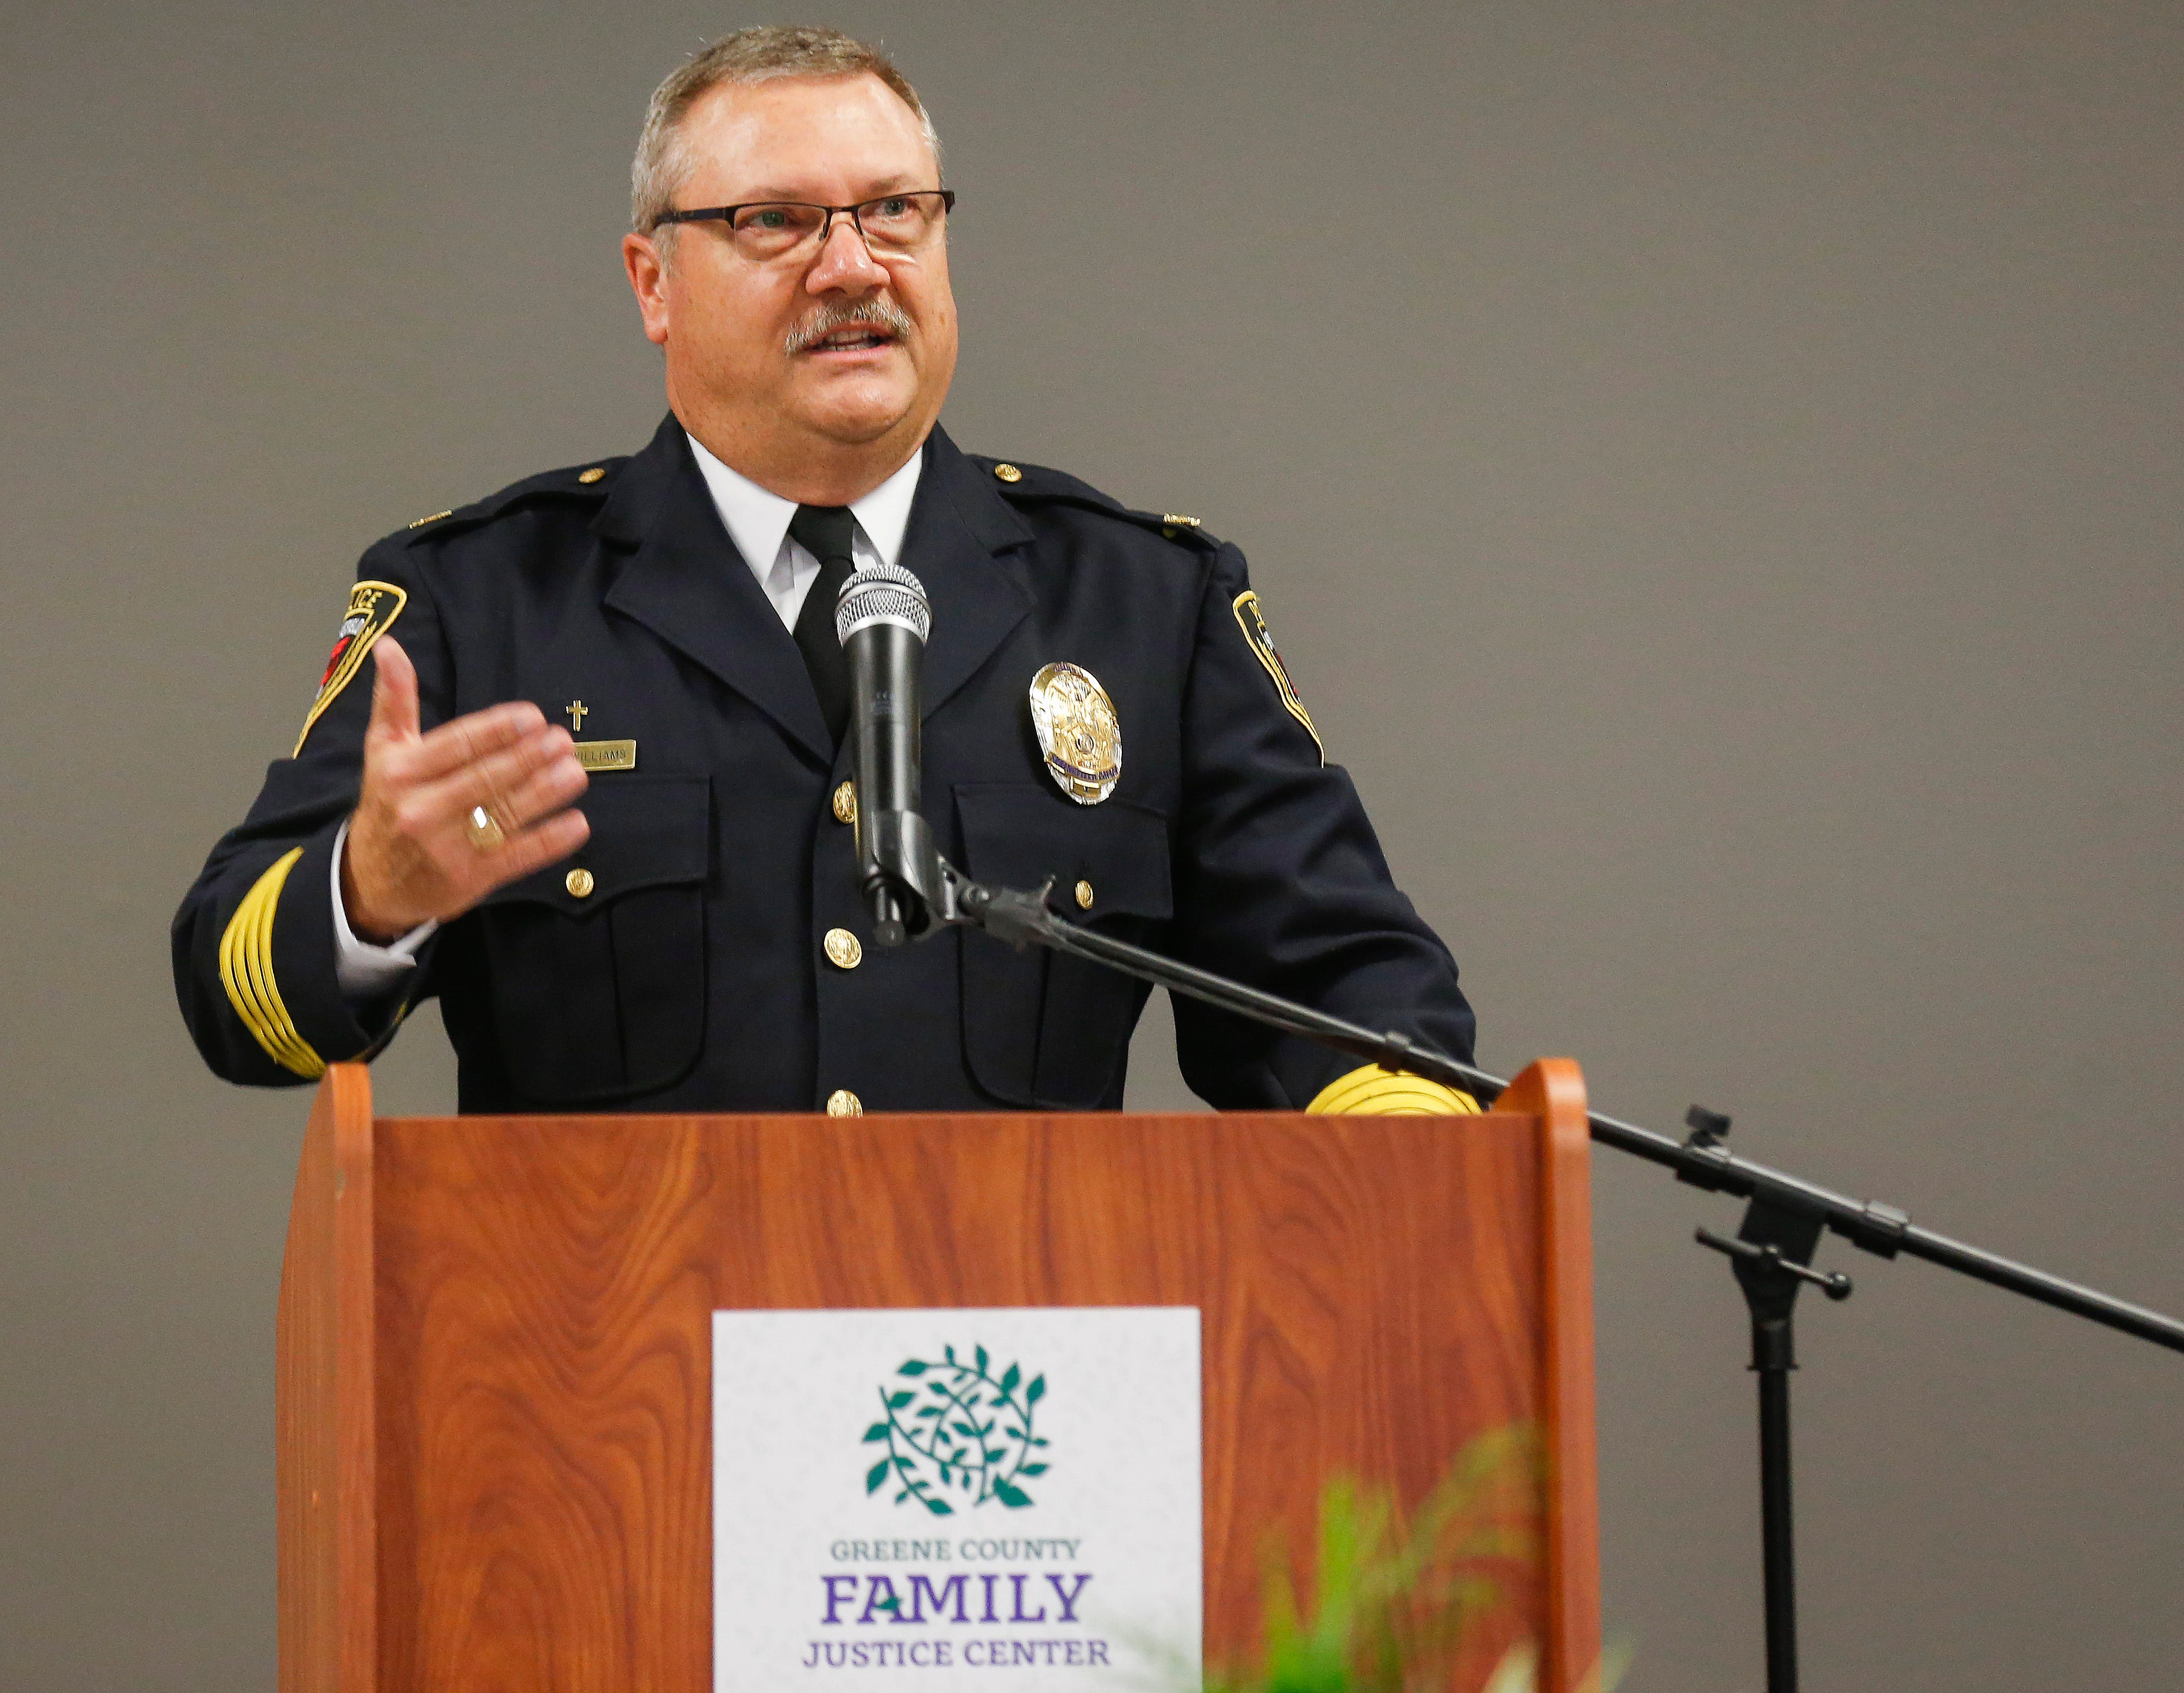 Springfield Police Chief Paul Williams speaks at the Family Justice Center on Monday, Oct. 1, 2018.